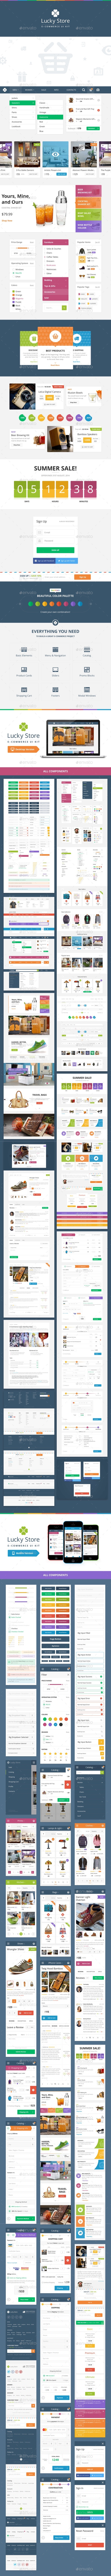 Lucky Store — Web & Mobile Ecommerce UI Kit - User Interfaces Web Elements